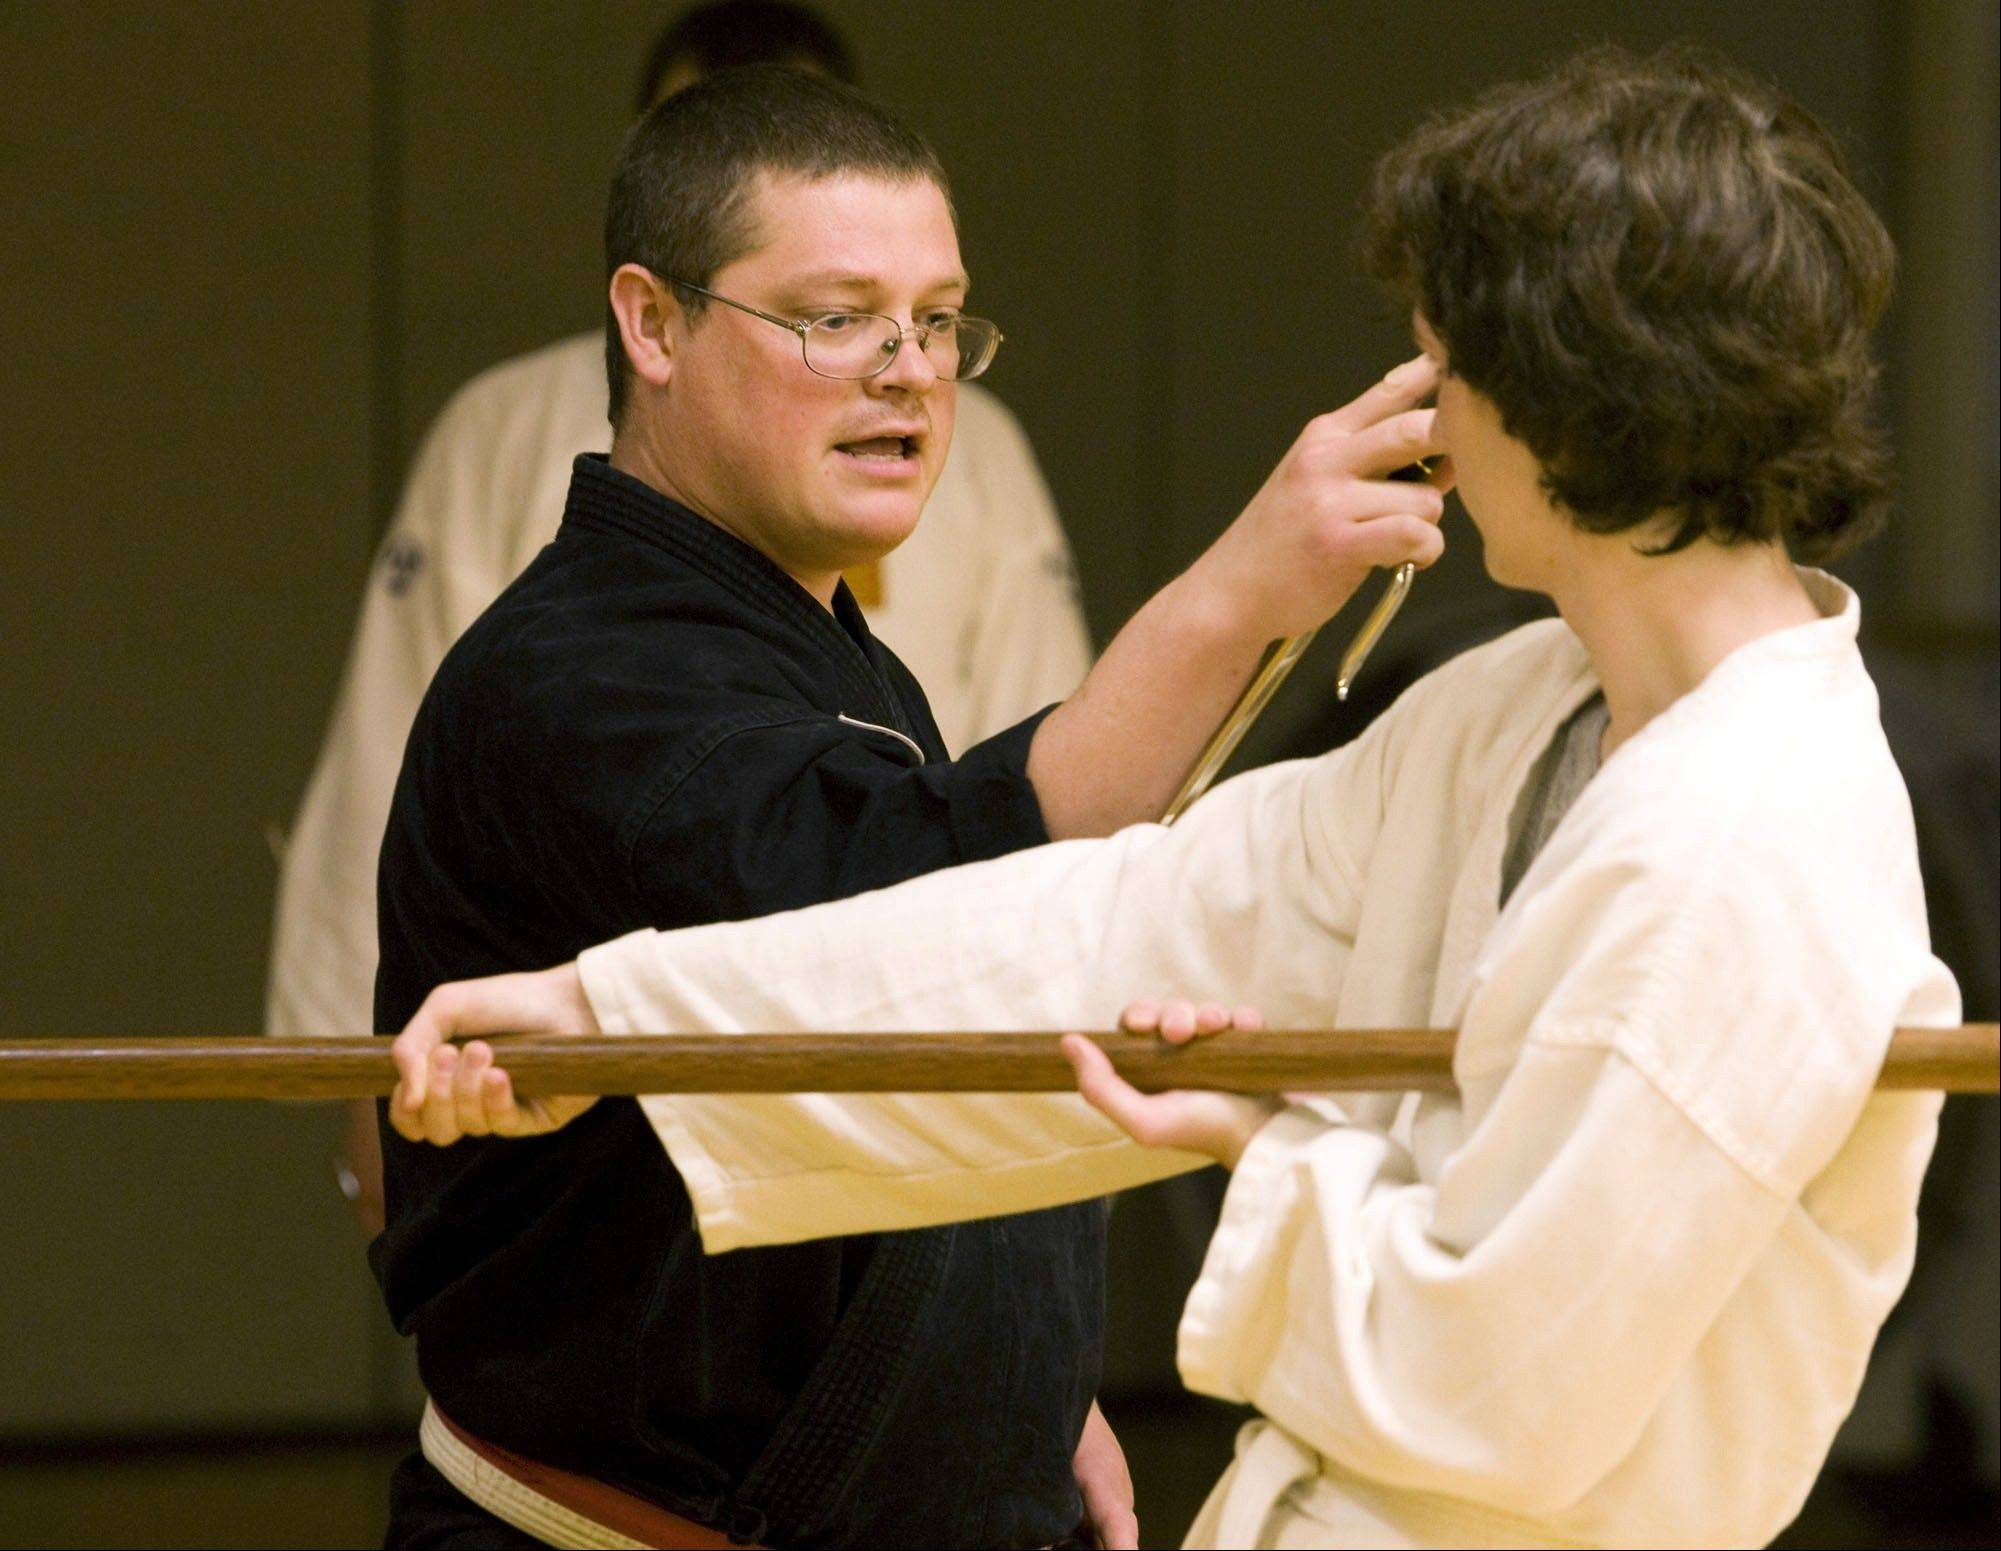 Kevin Hughes, a martial arts instructor at the Decatur YMCA, works with 16-year-old Keith Chapman during a weapons training portion of a class. Hughes specializes in teaching the power of self-control.